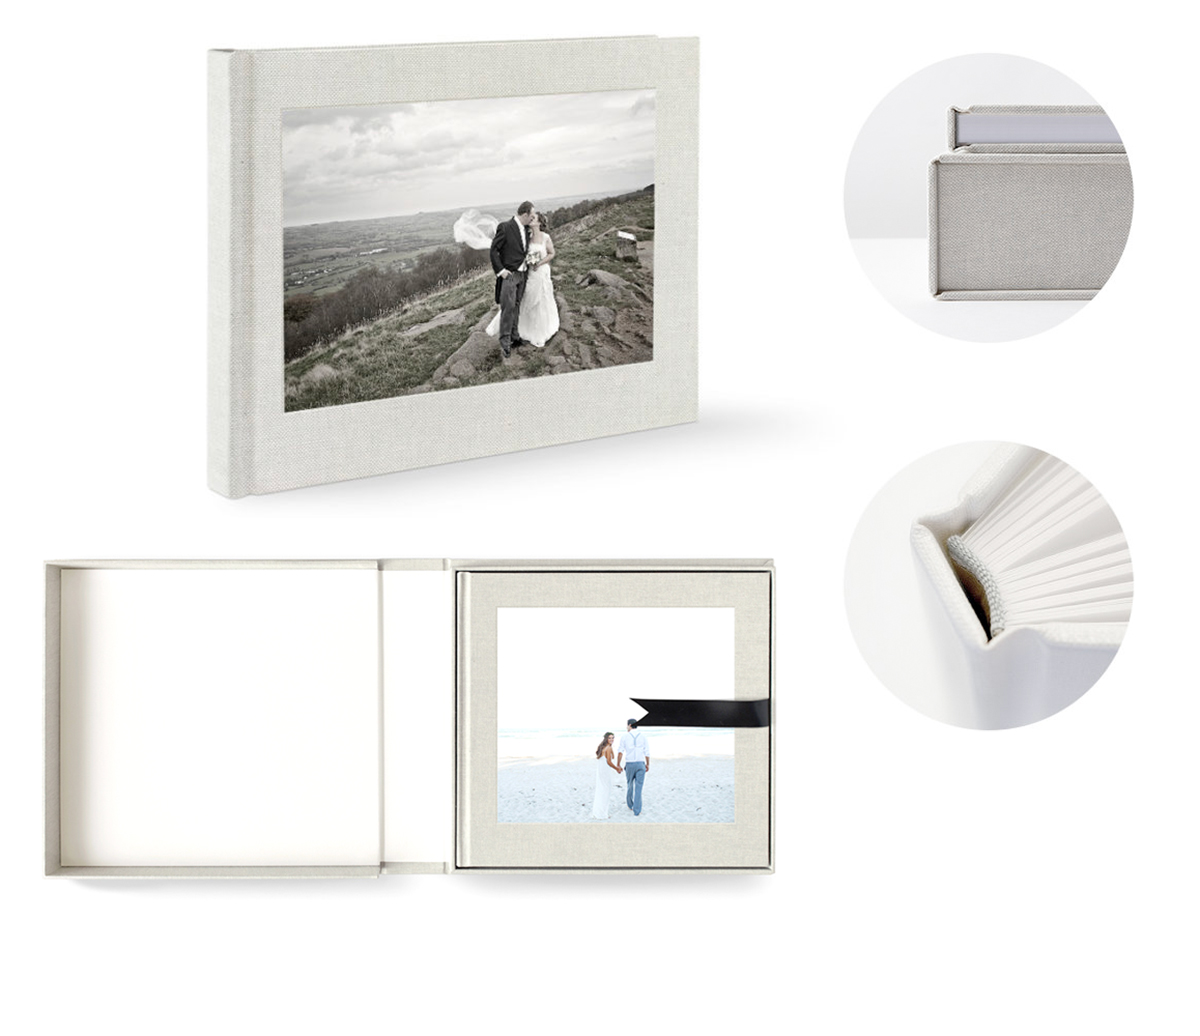 Premium Photo Book Album - The crème de la crème of the album range. A large 32 x 24cm, hand-made photo book, exquisitely bound in a Metallic Pearl Buckram hard cover and presented in a Buckram presentation box. The book is made up of 120 FSC approved, premium, acid-free pages that tell the story of your unique and special day with hand selected and edited photos.Price: £450 (Plus P&P)Order / More Info